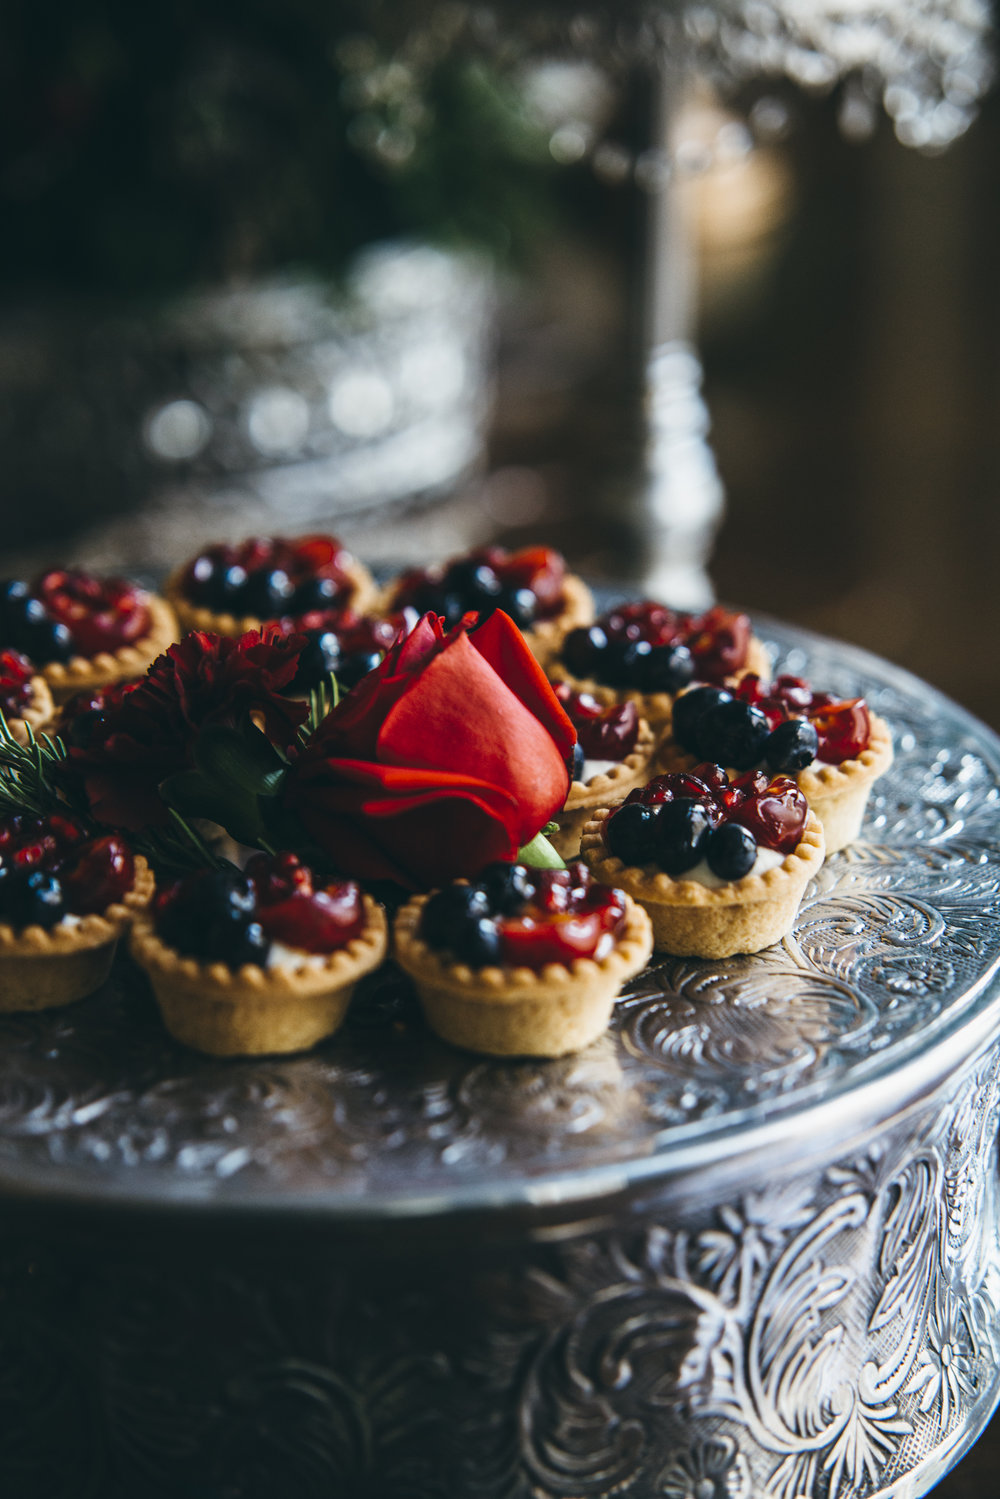 Fruit tarts - – vanilla bean, pastry cream, fresh berries, apricot glaze